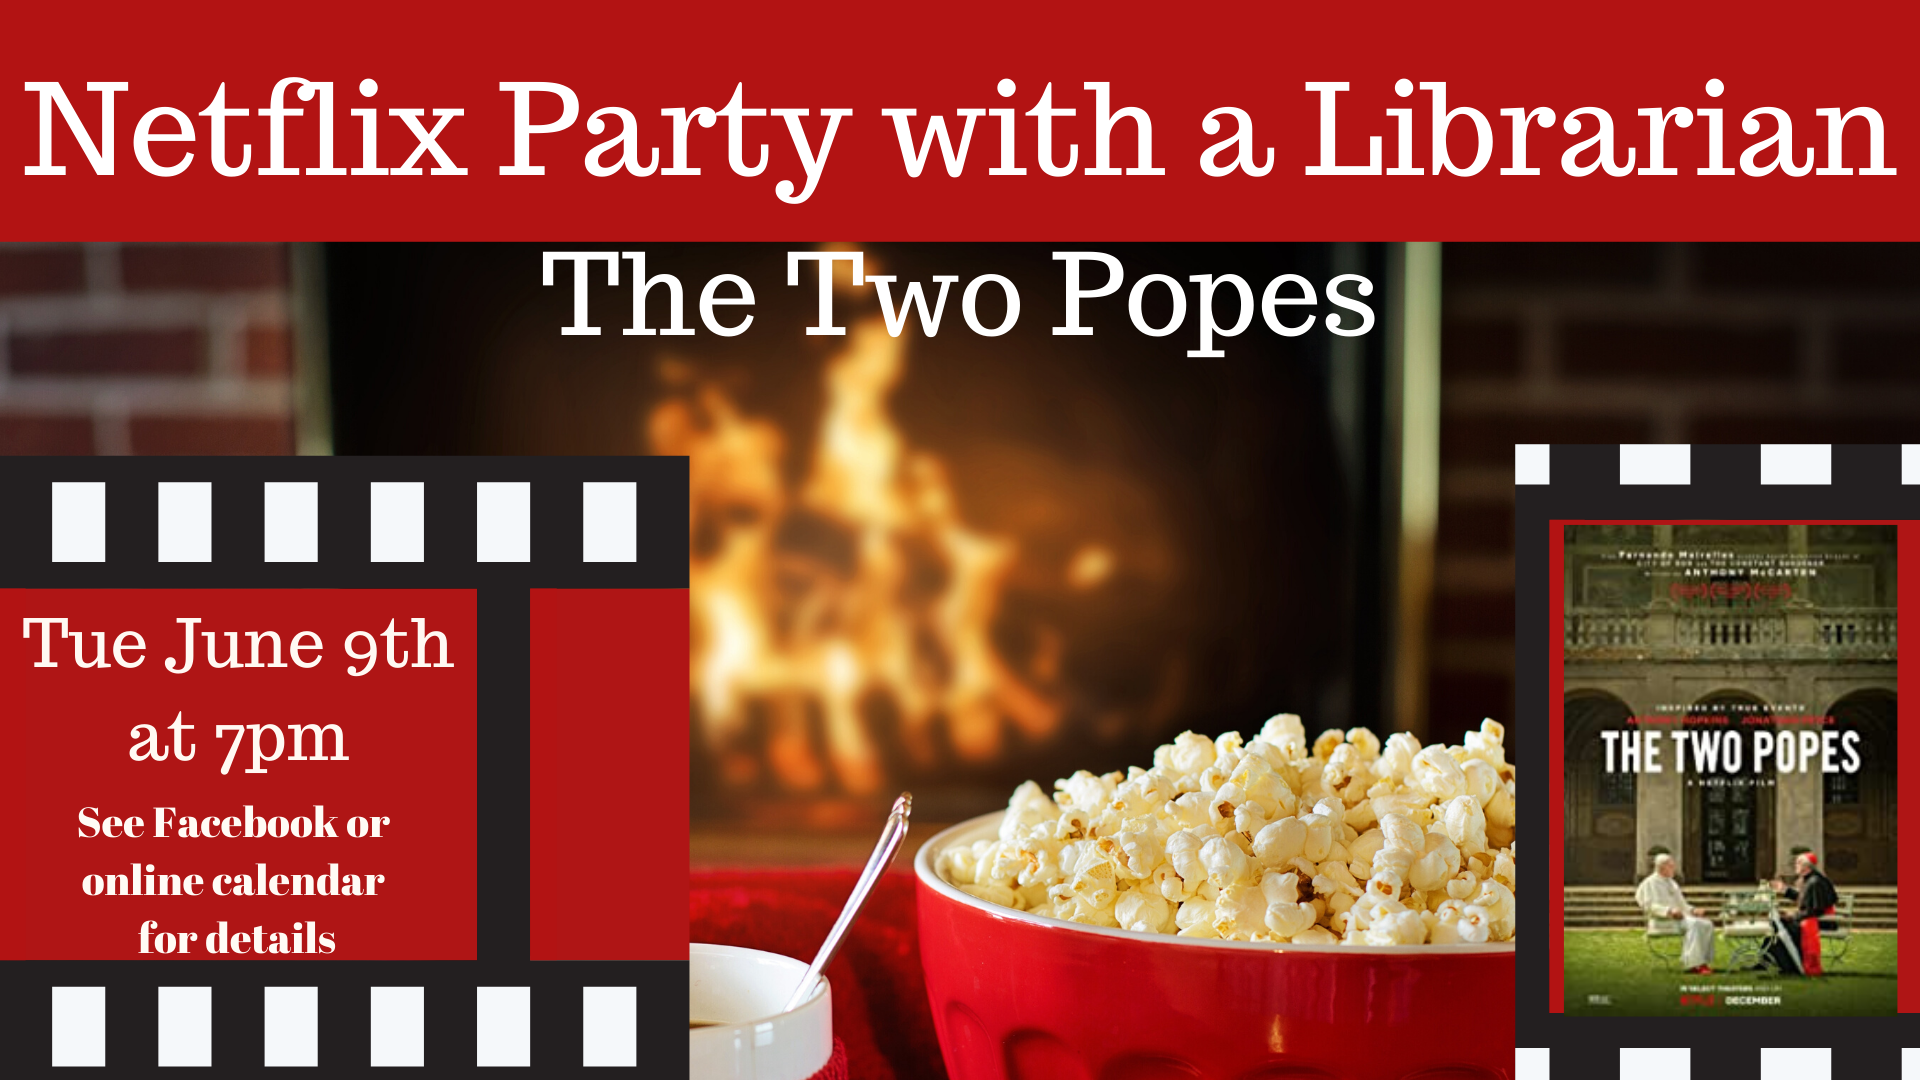 Netflix Party with a Librarian: The Two Popes